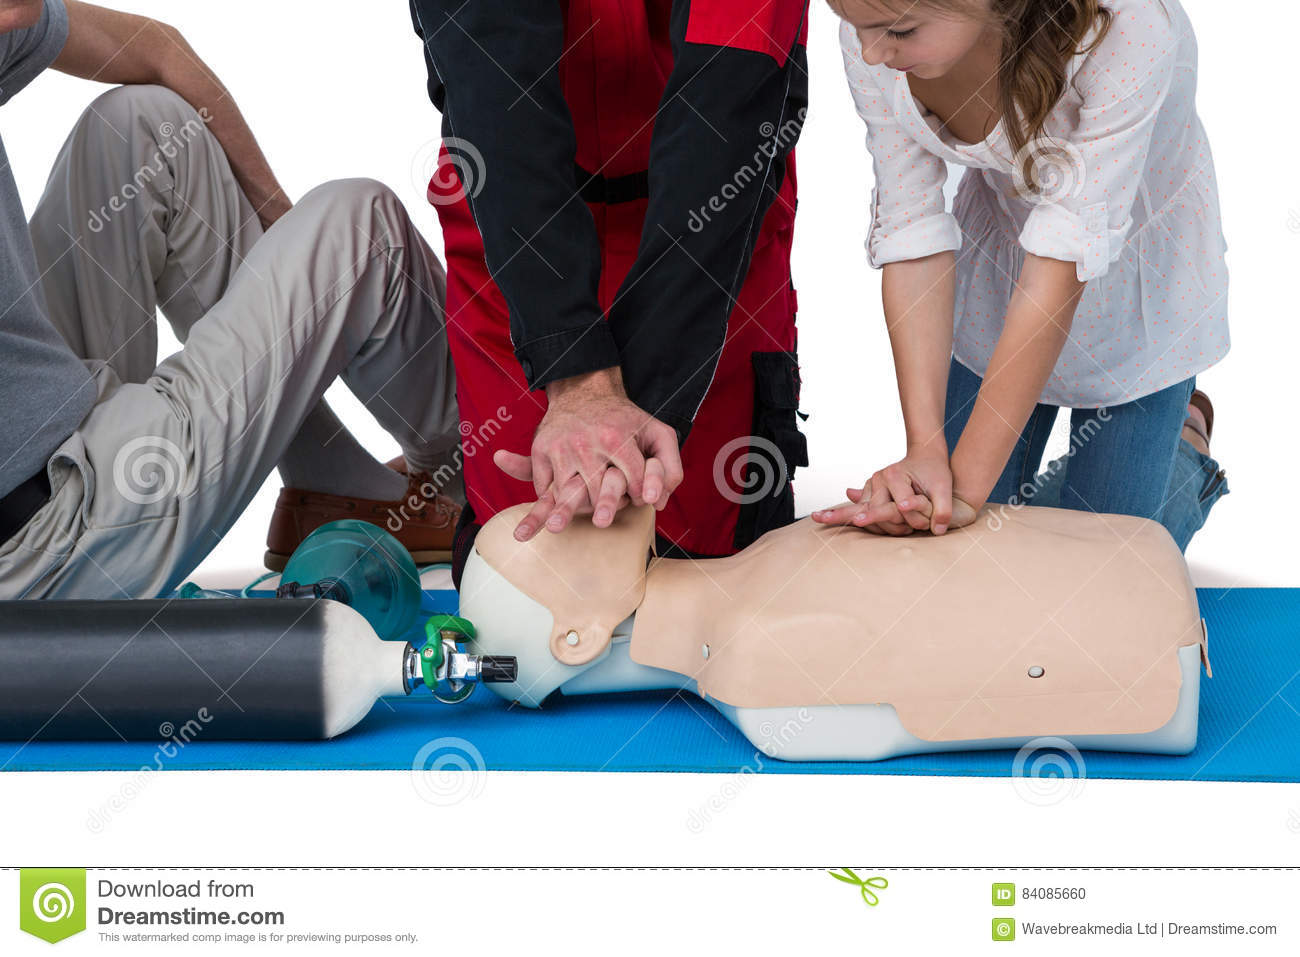 Download Paramedic Training Cardiopulmonary Resuscitation To Girl Stock Photo - Image of heart, paramedical: 84085660